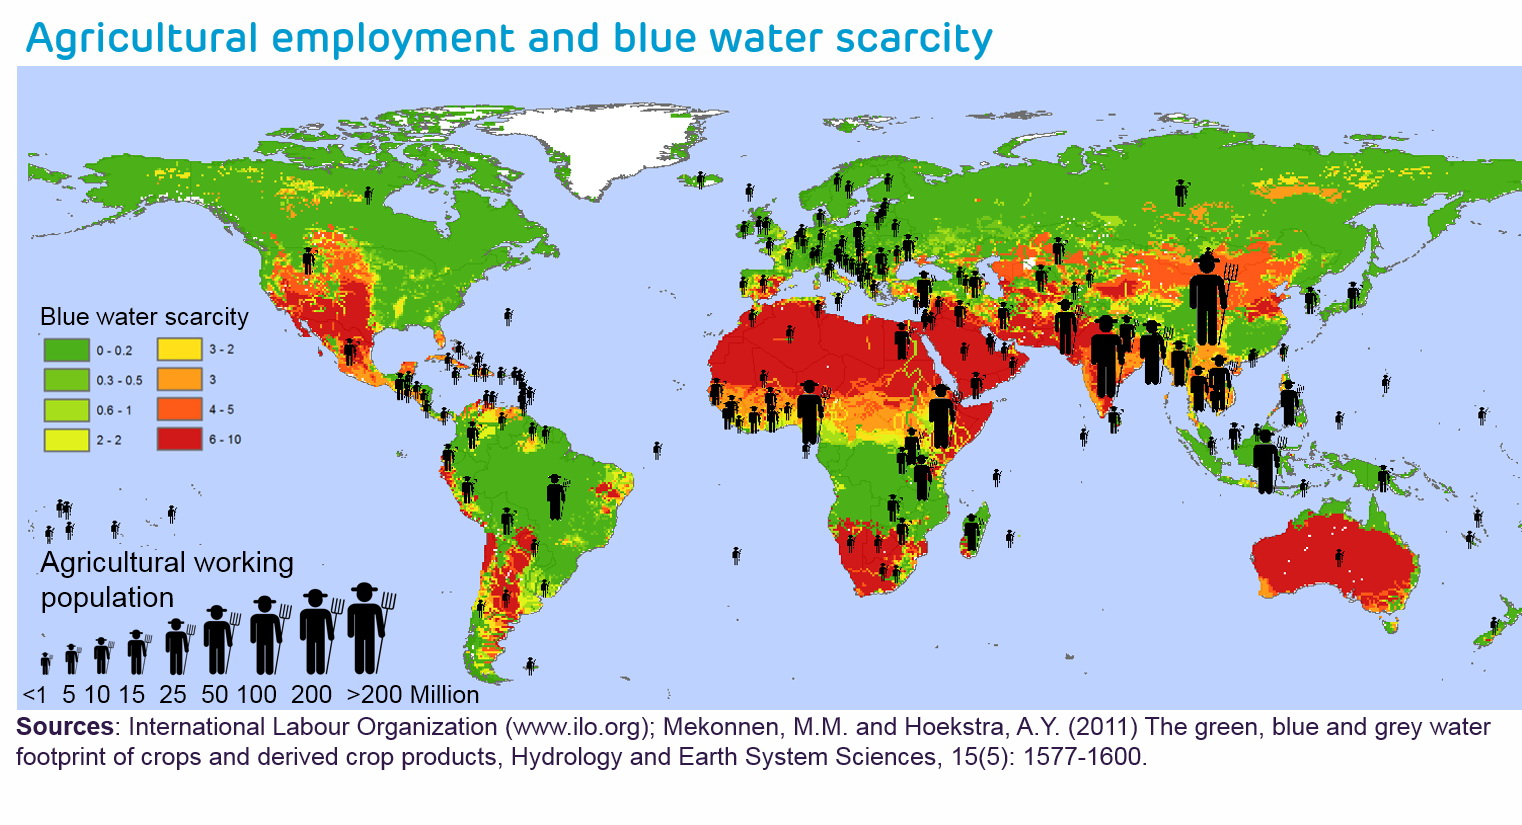 Agricultural employment and blue water scarcity